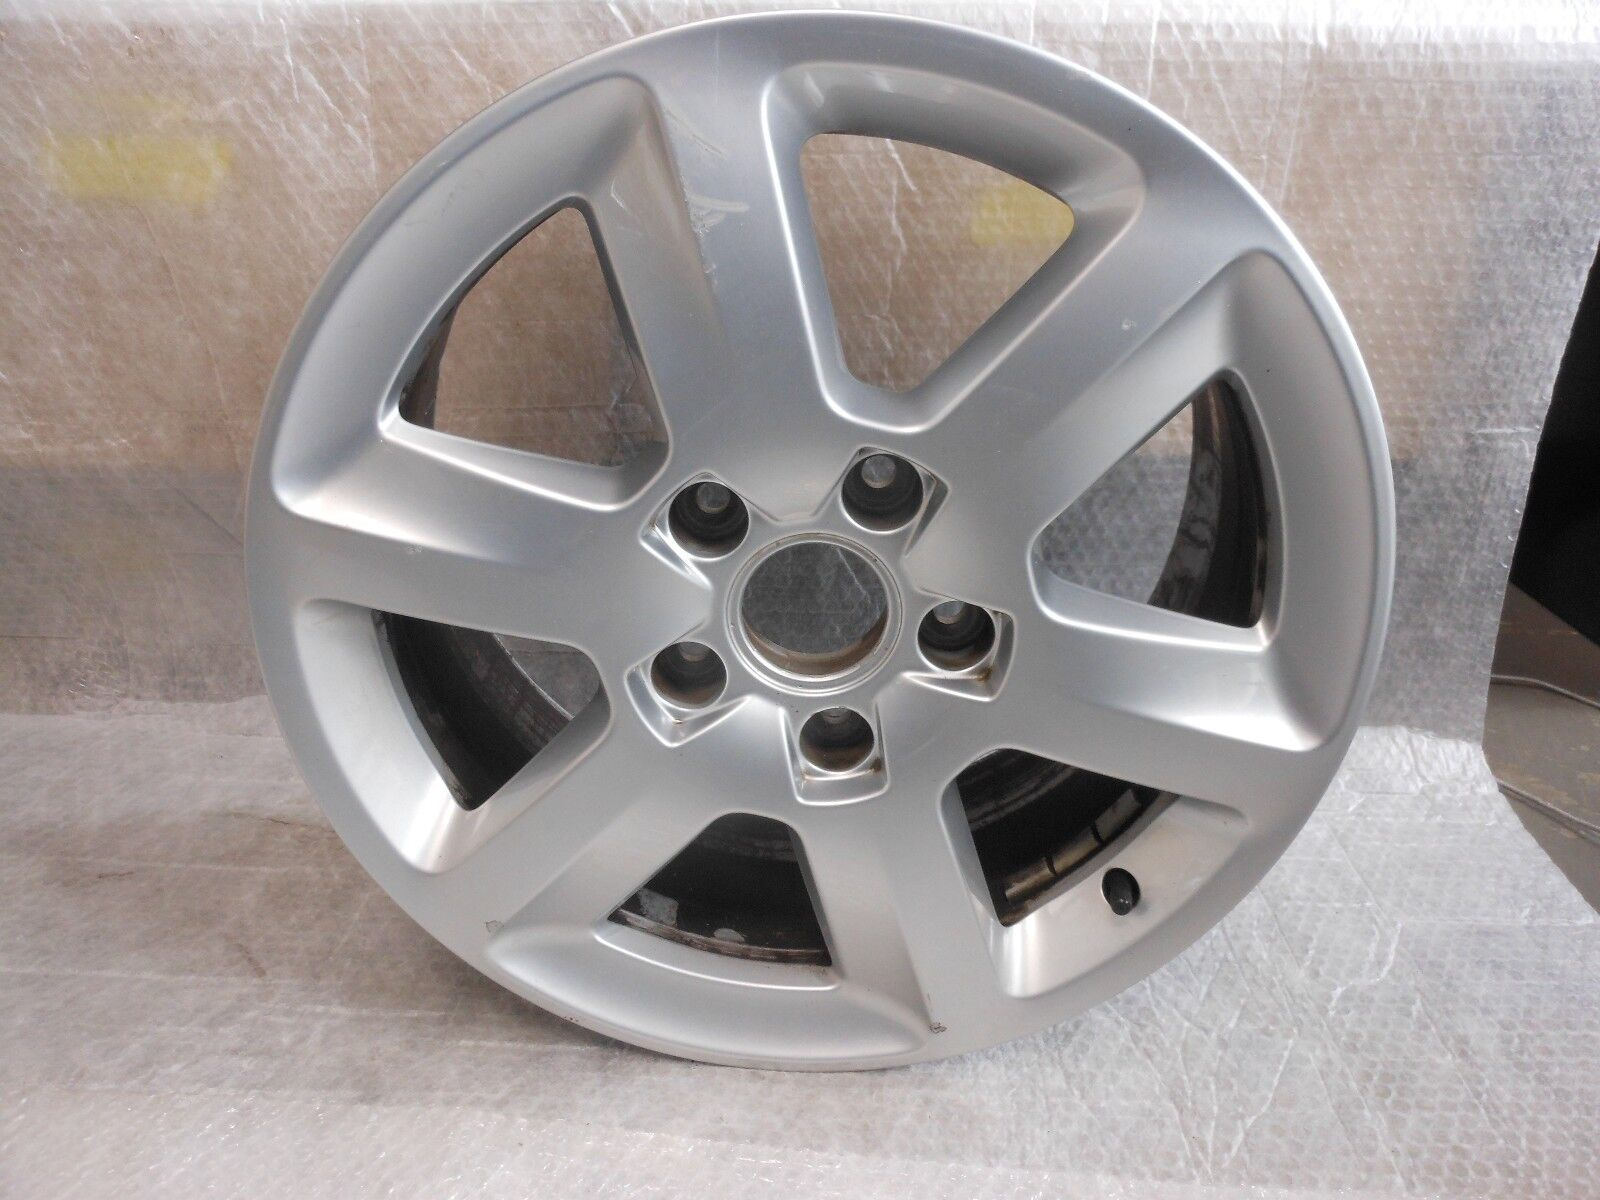 Used Audi Q7 Wheels for Sale